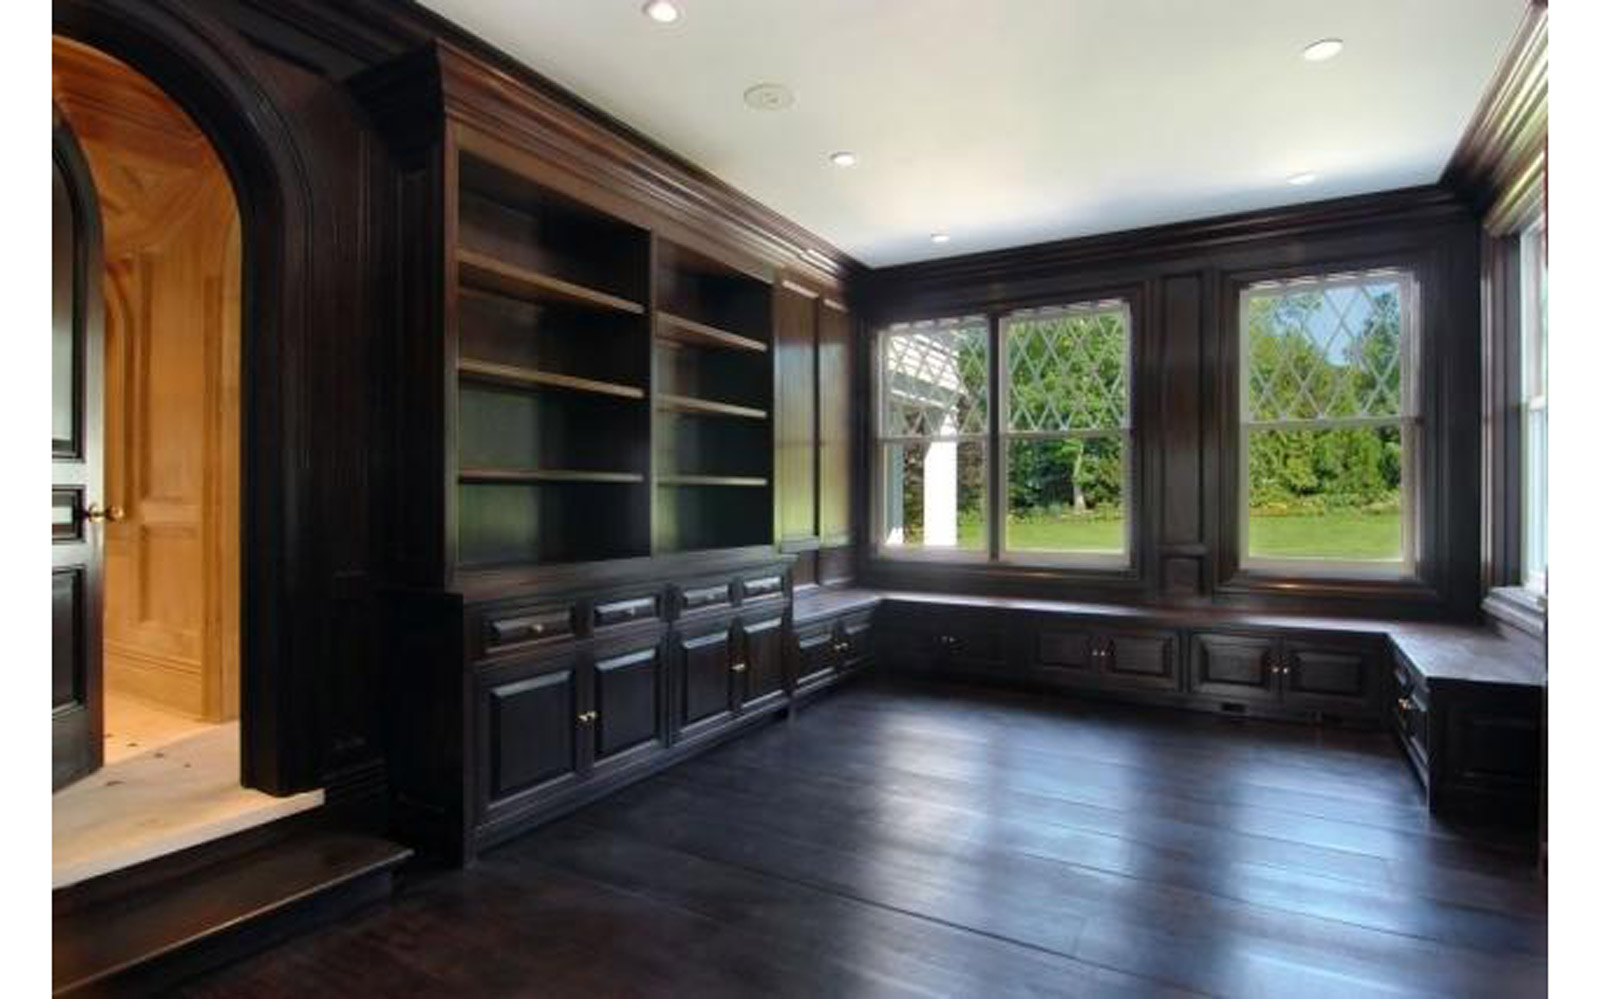 Wooden room in Beyoncé and JAY-Z's Hampton house